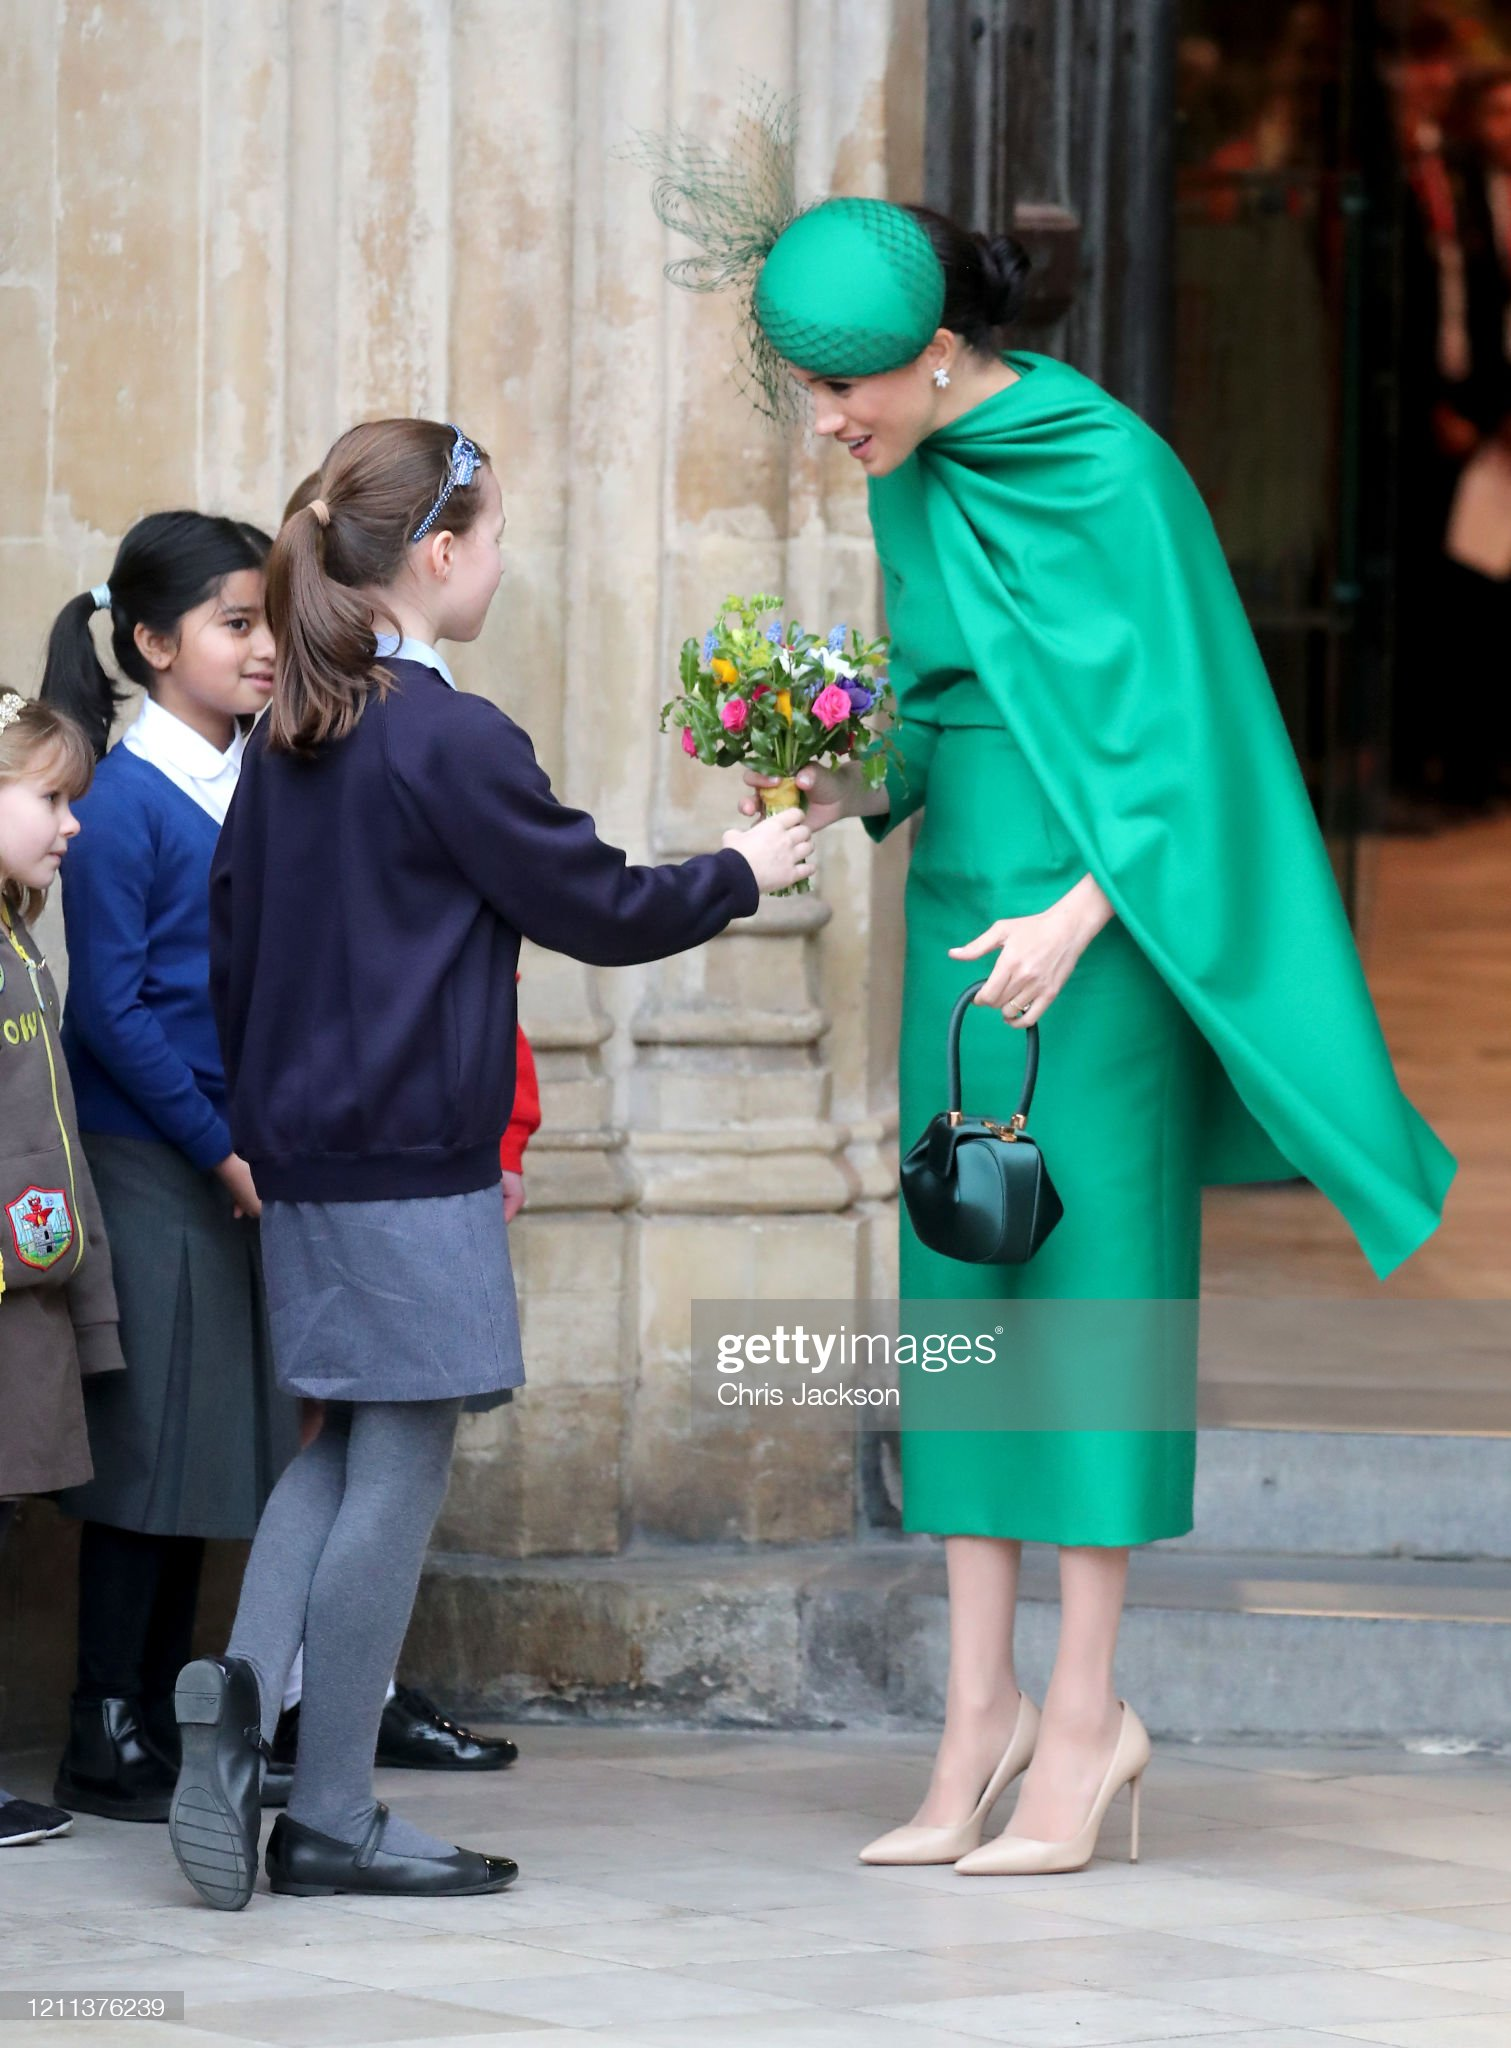 https://media.gettyimages.com/photos/meghan-duchess-of-sussex-speaks-to-a-young-wellwisher-as-she-departs-picture-id1211376239?s=2048x2048